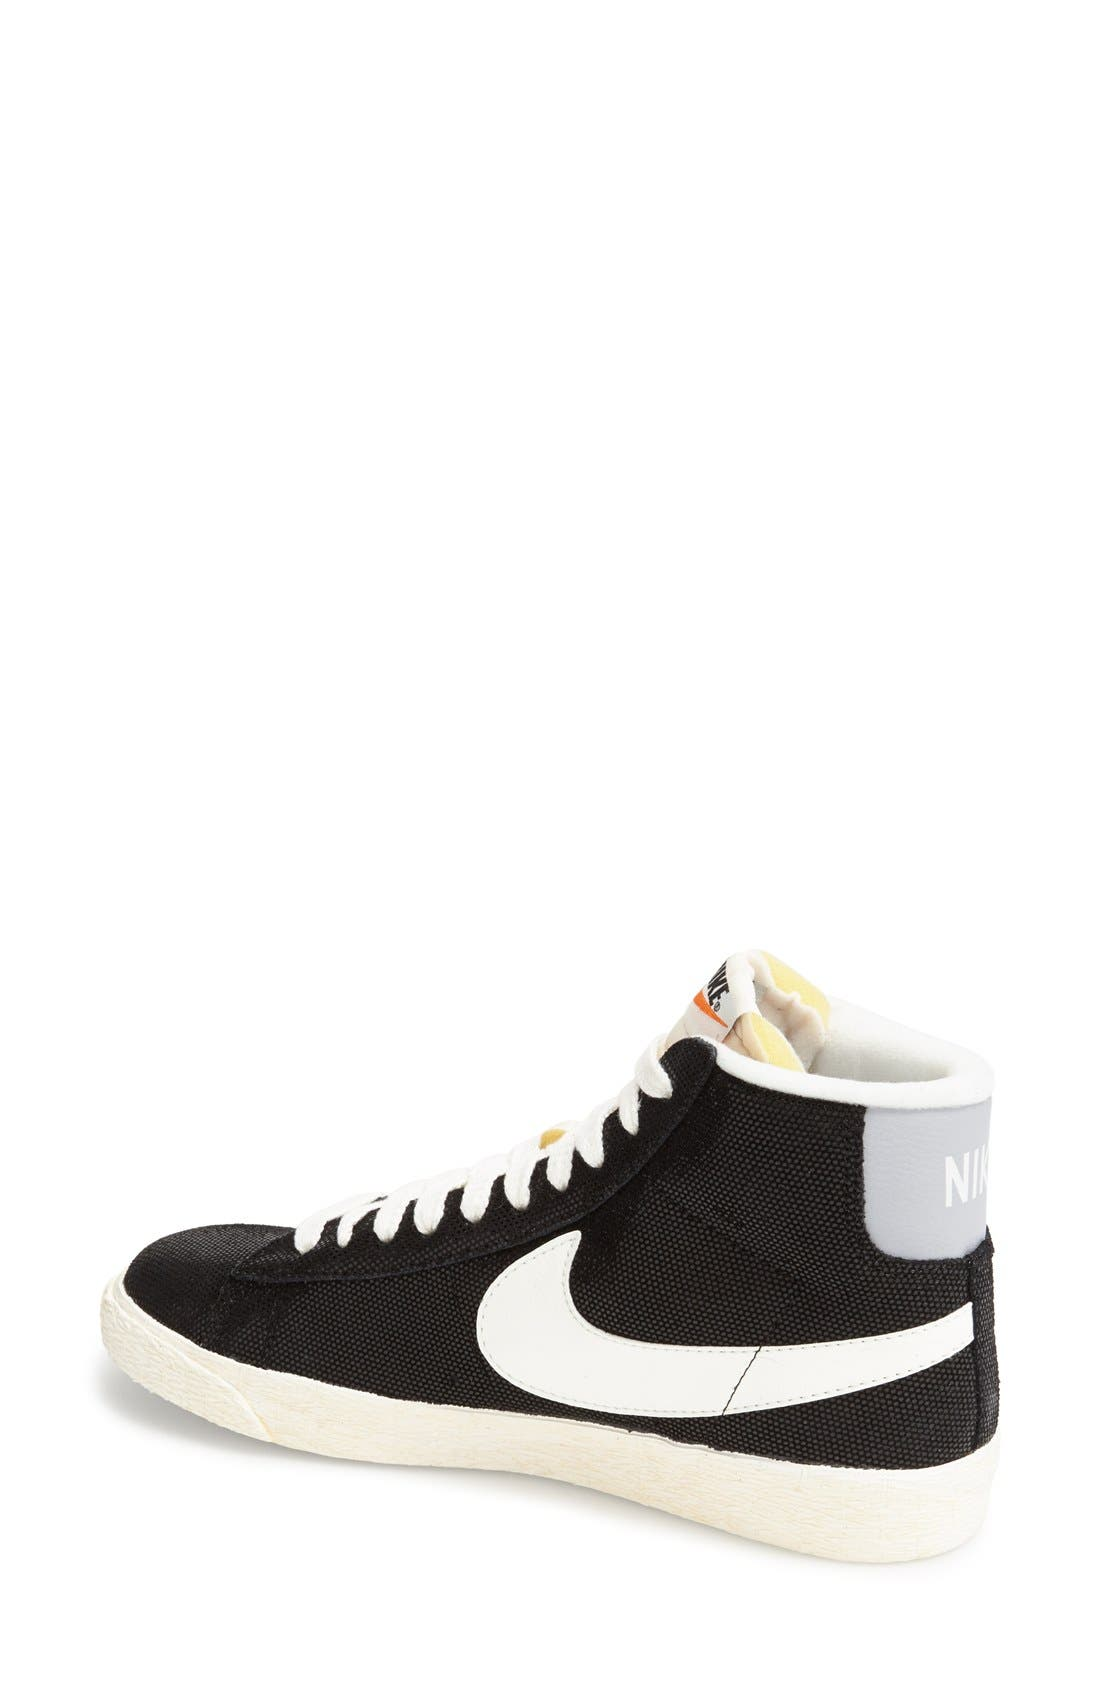 NIKE, 'Blazer' Vintage High Top Basketball Sneaker, Alternate thumbnail 4, color, 009